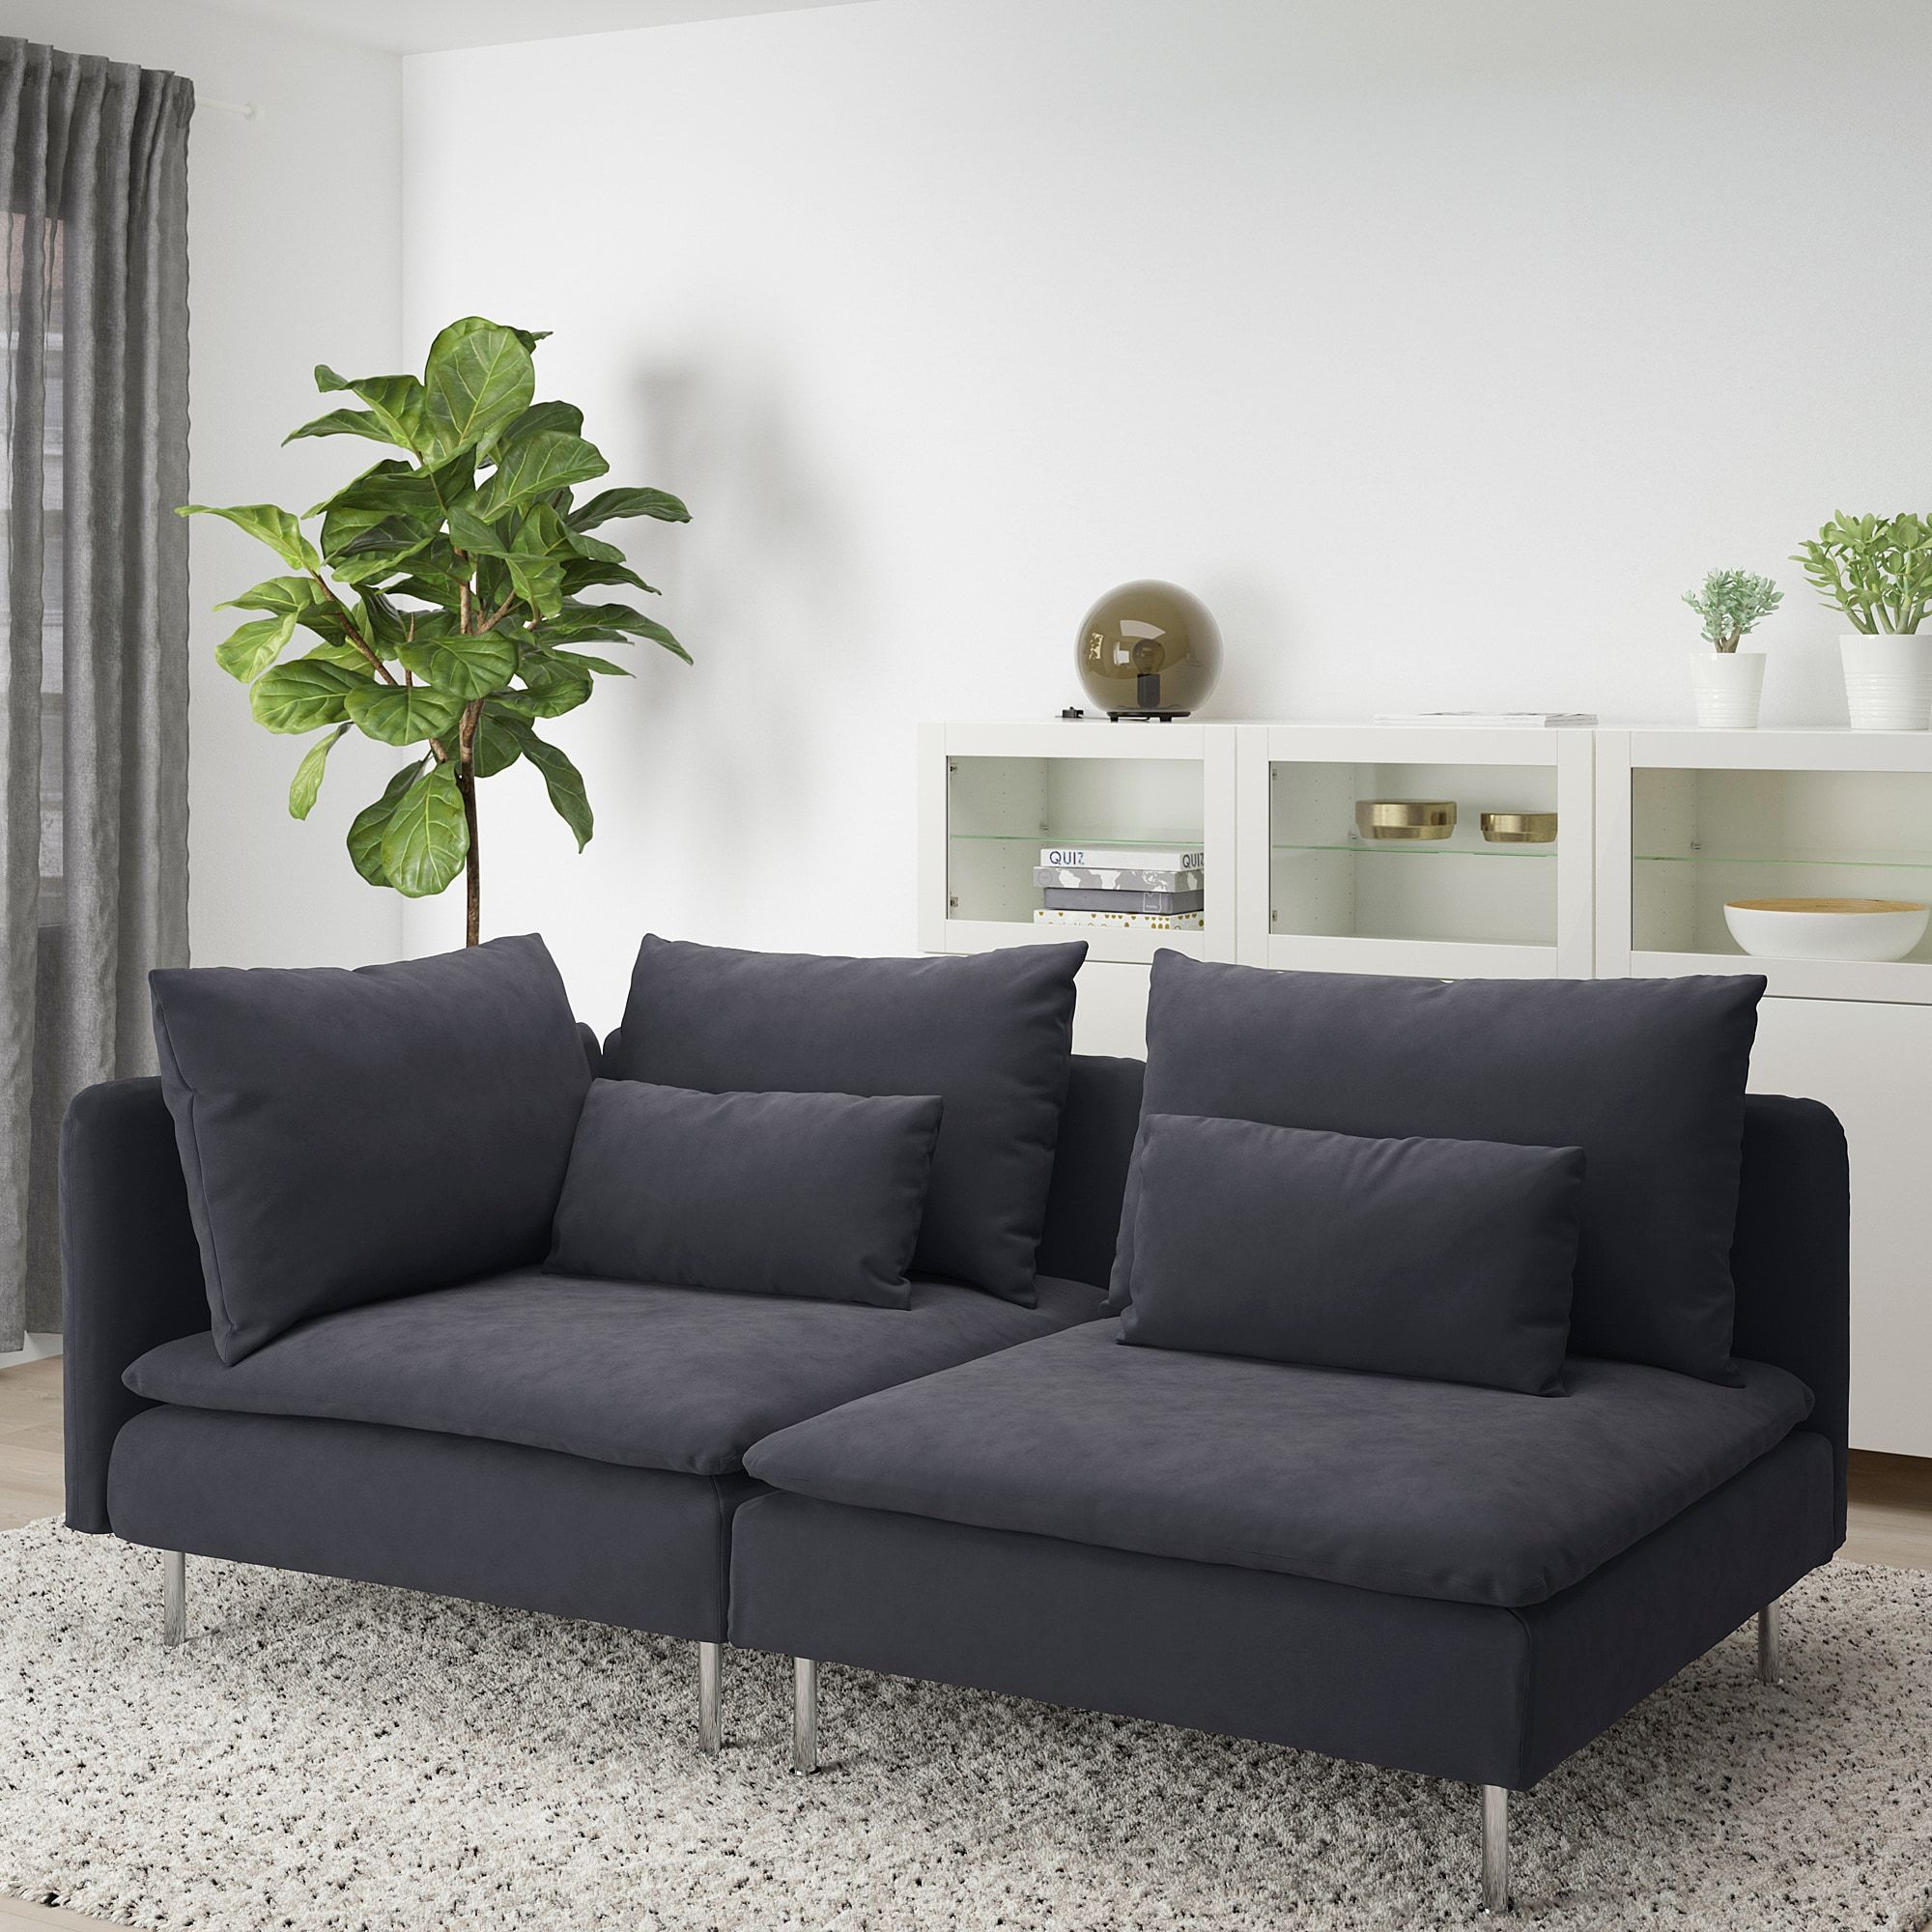 Soderhamn Sofa With Open End Samsta Dark Gray Soffa Med